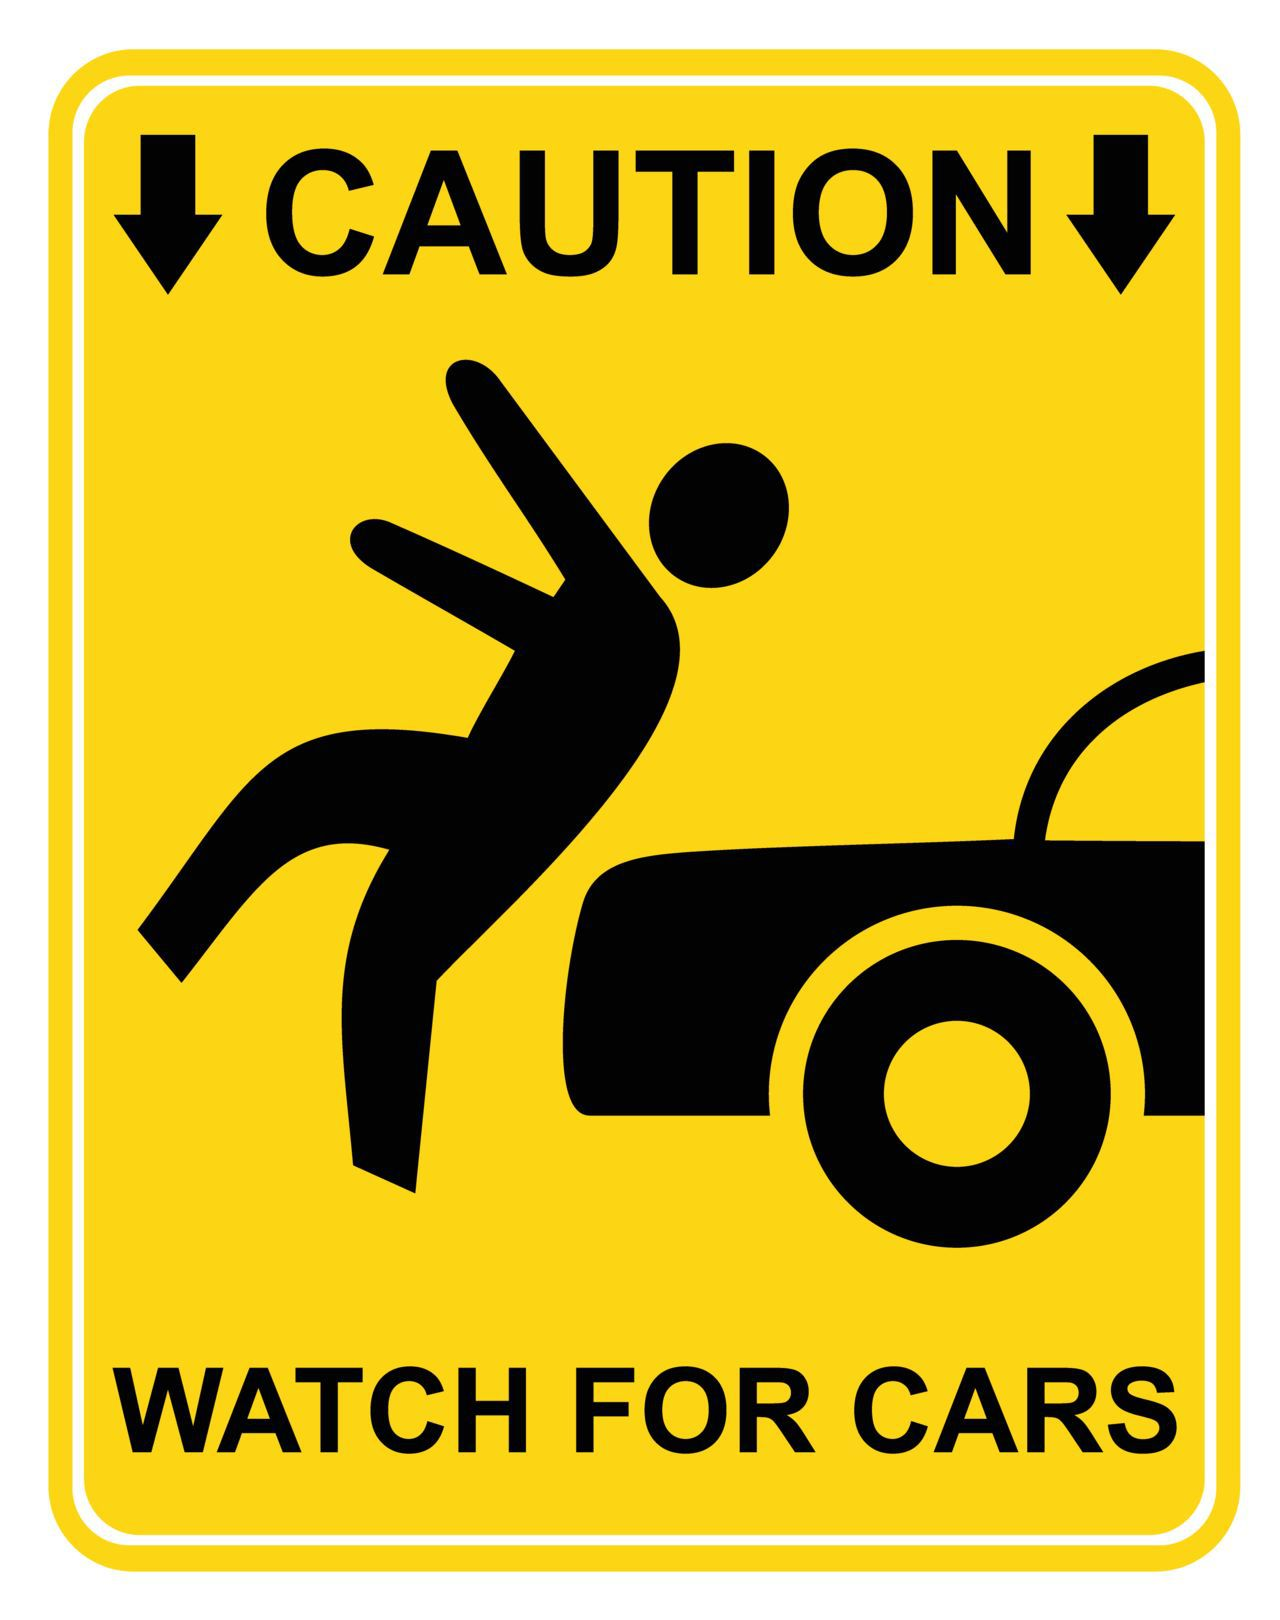 Pedestrian Caution Sign that Says Watch for Cars